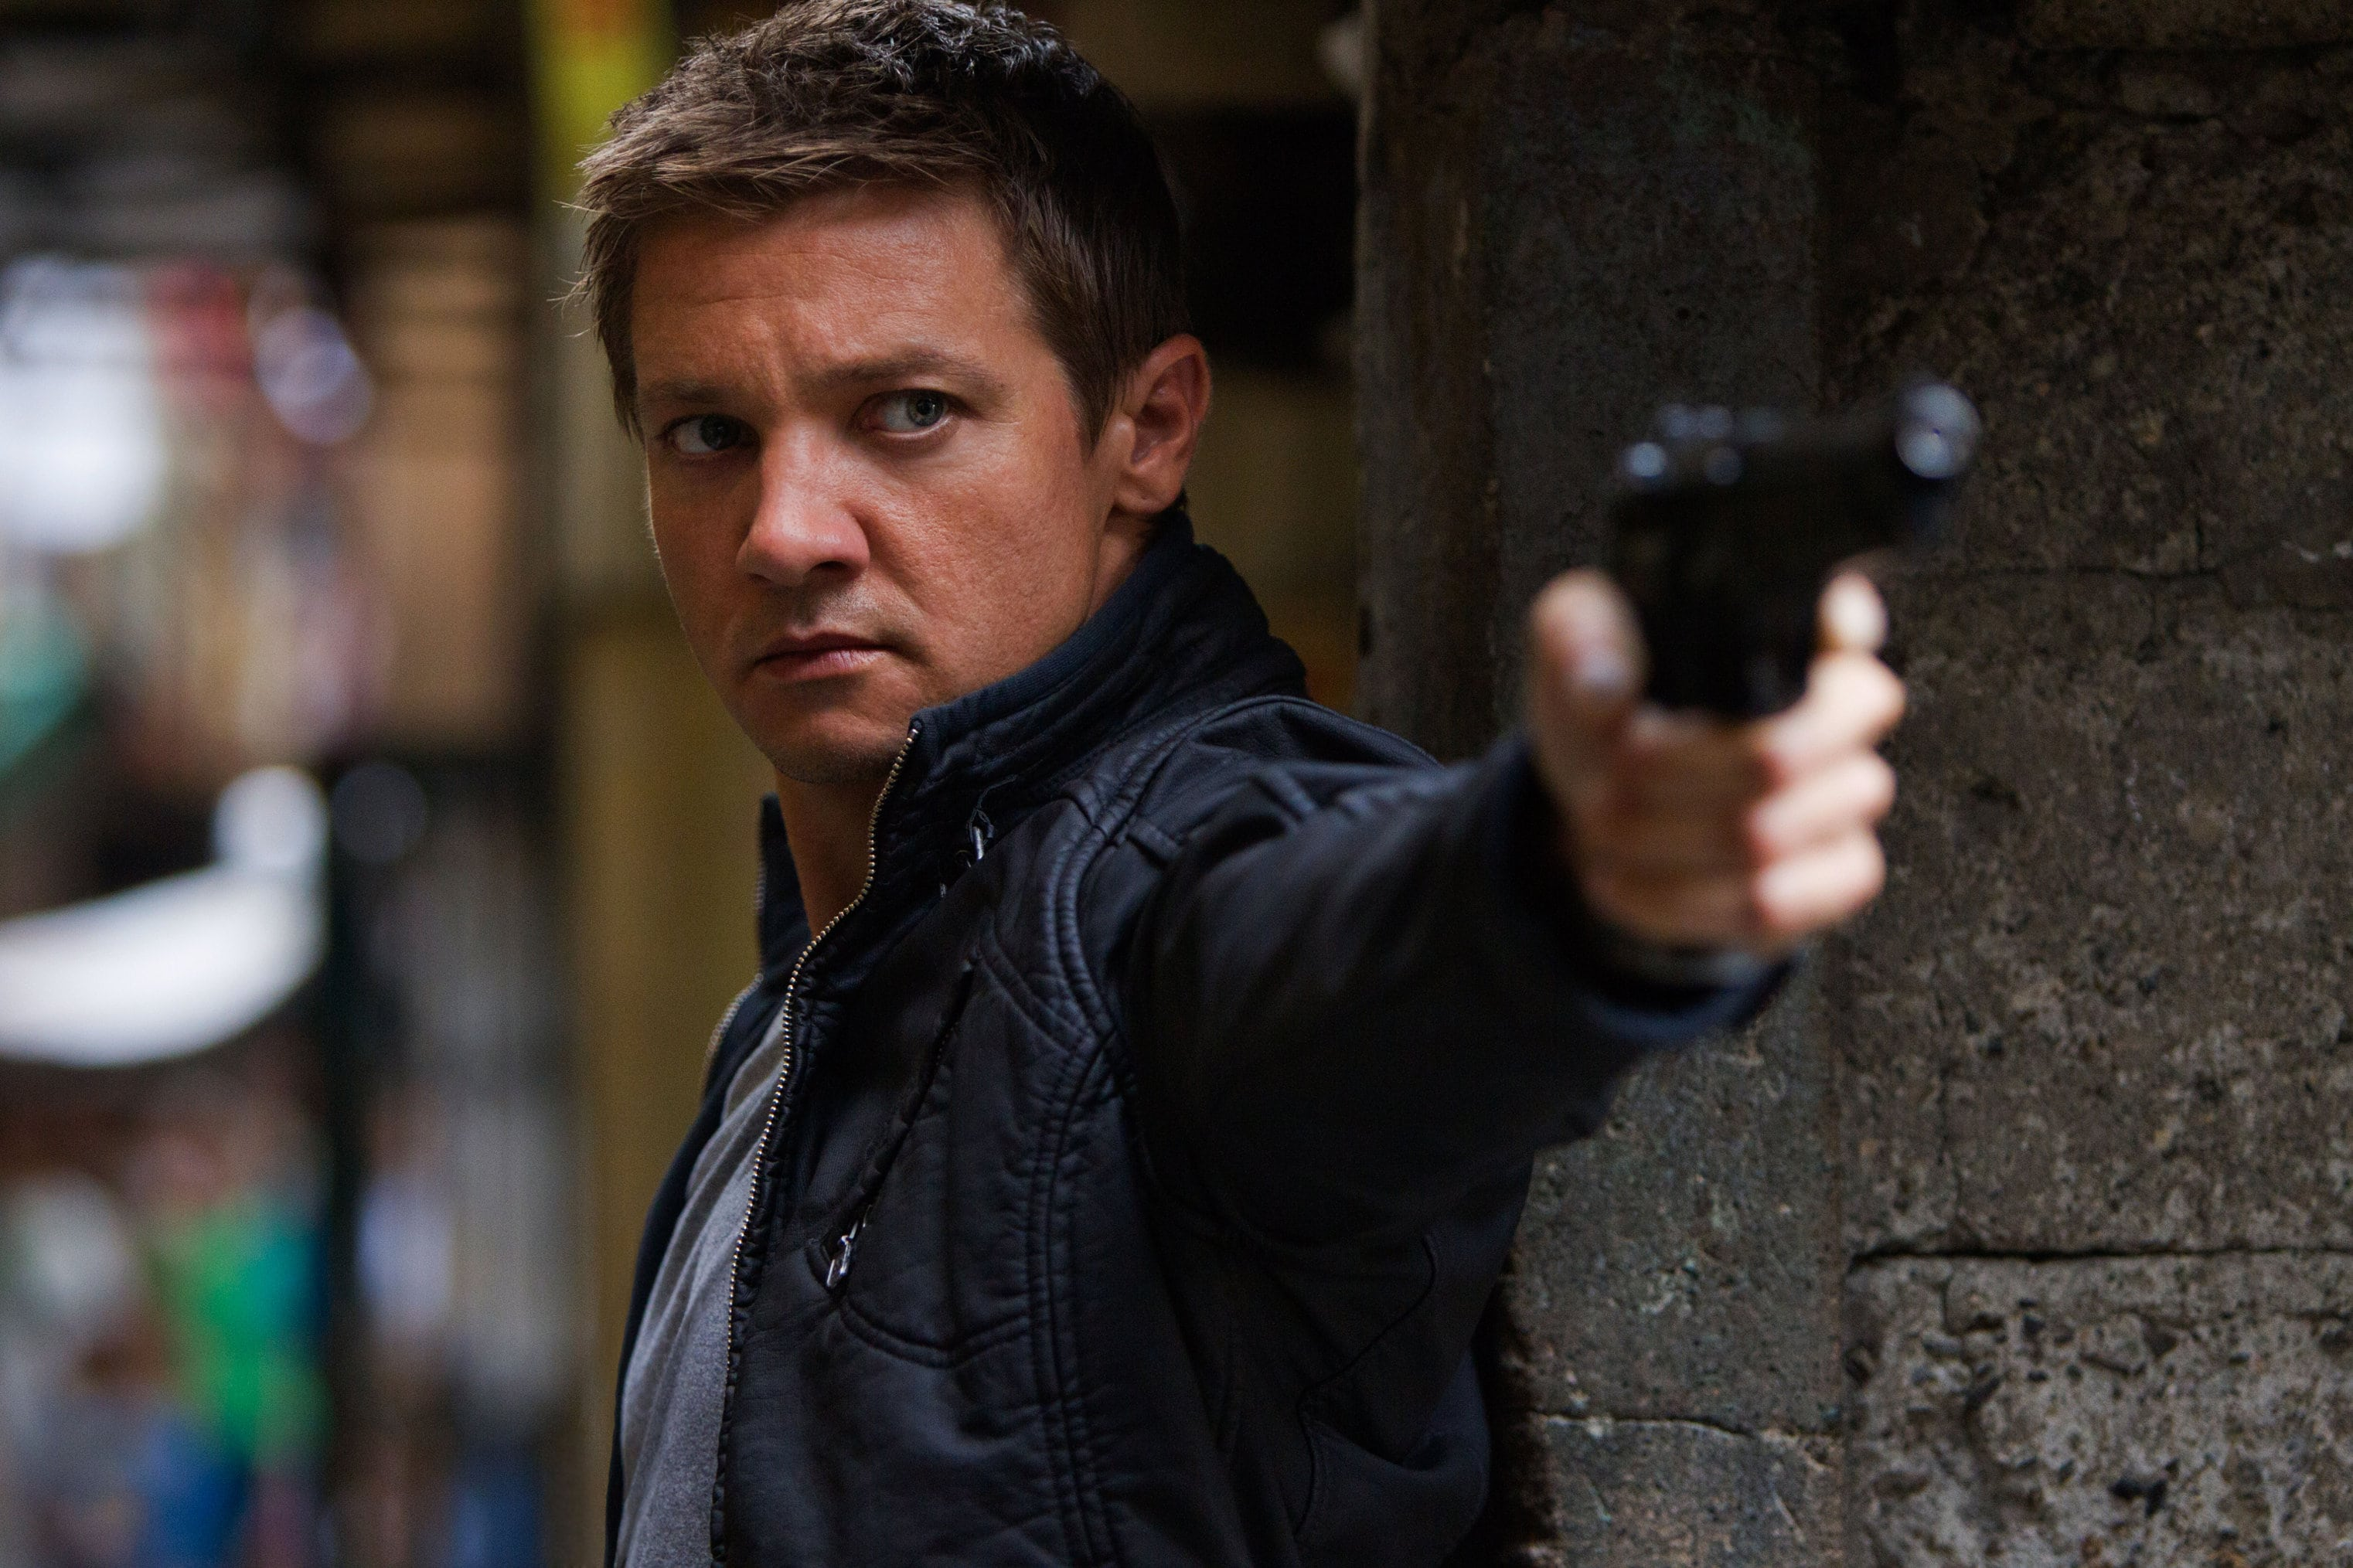 Untitled Jeremy Renner/Bourne Sequel widescreen wallpapers